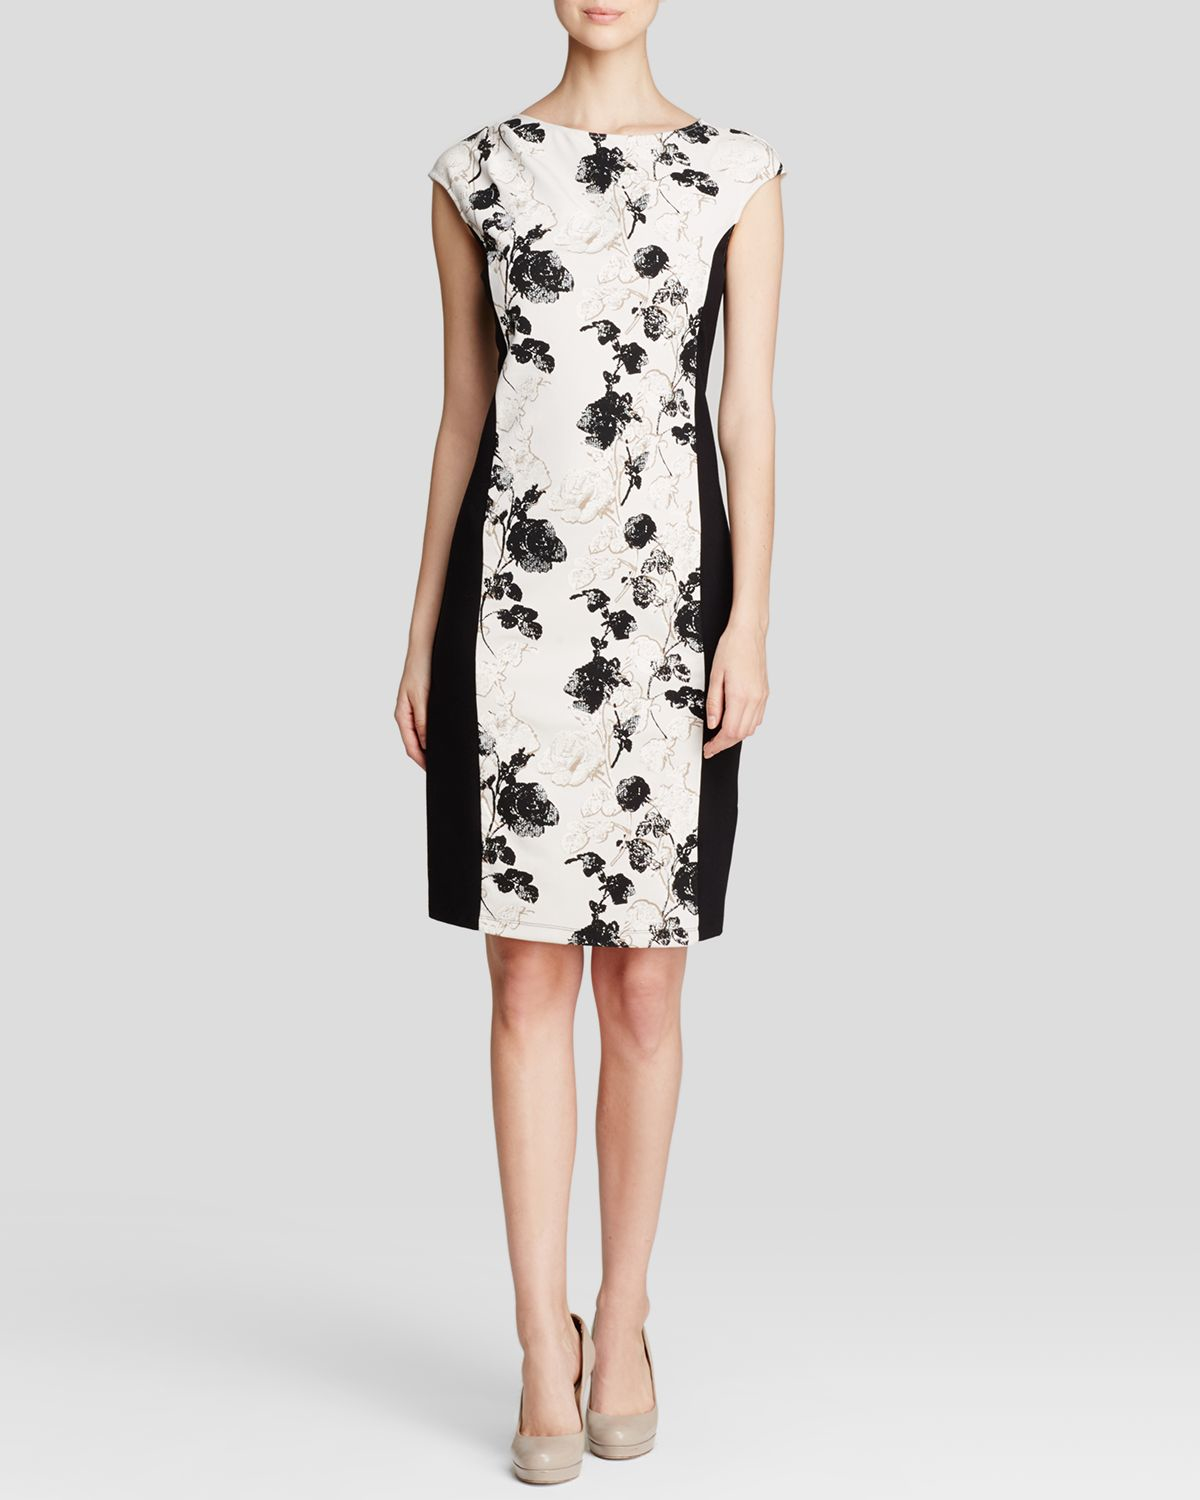 03825a7c476 Weekend by Maxmara Dress - Fionda Stretch Floral Print in Natural - Lyst